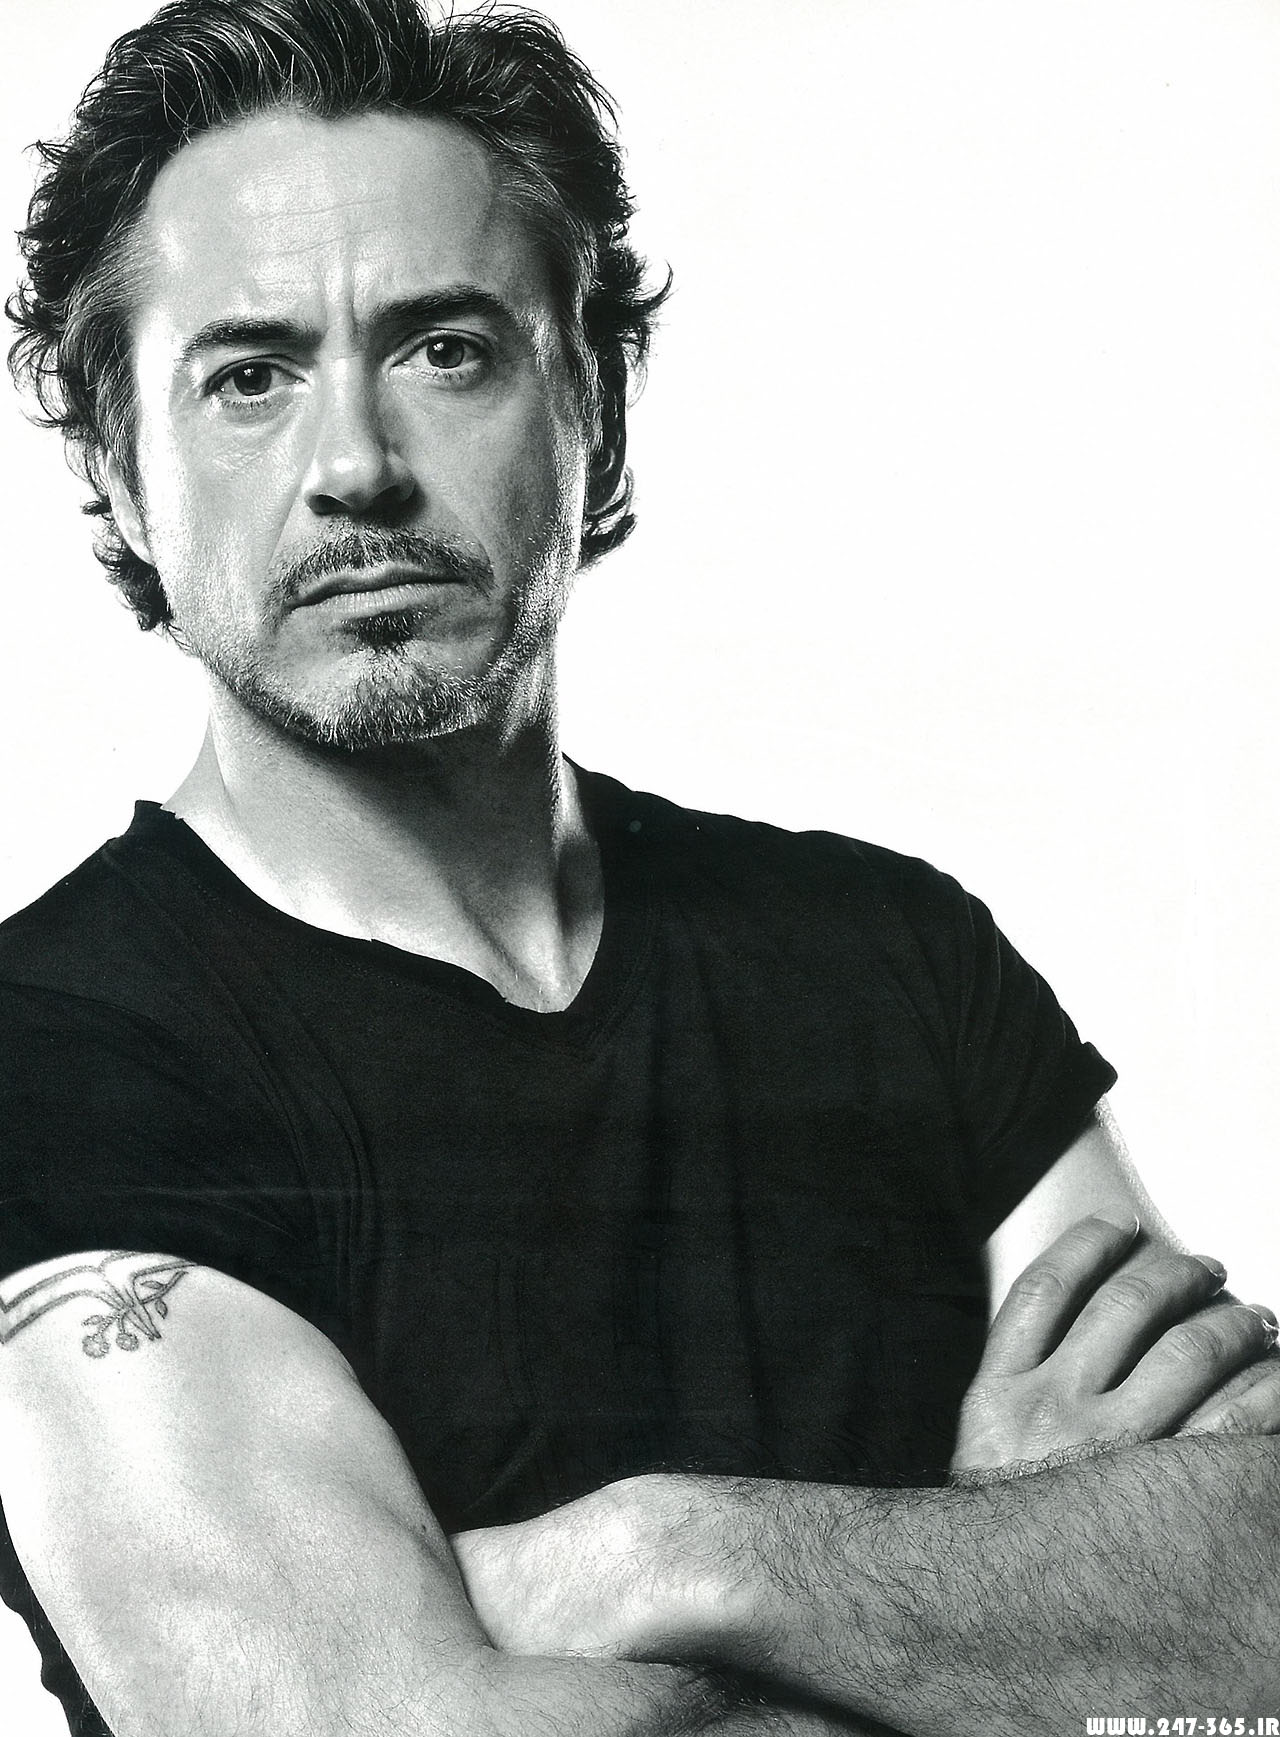 http://dl.247-365.ir/pic/celebrity/robert_downey_jr_1/Robert_Downey_Jr_1_01.jpg